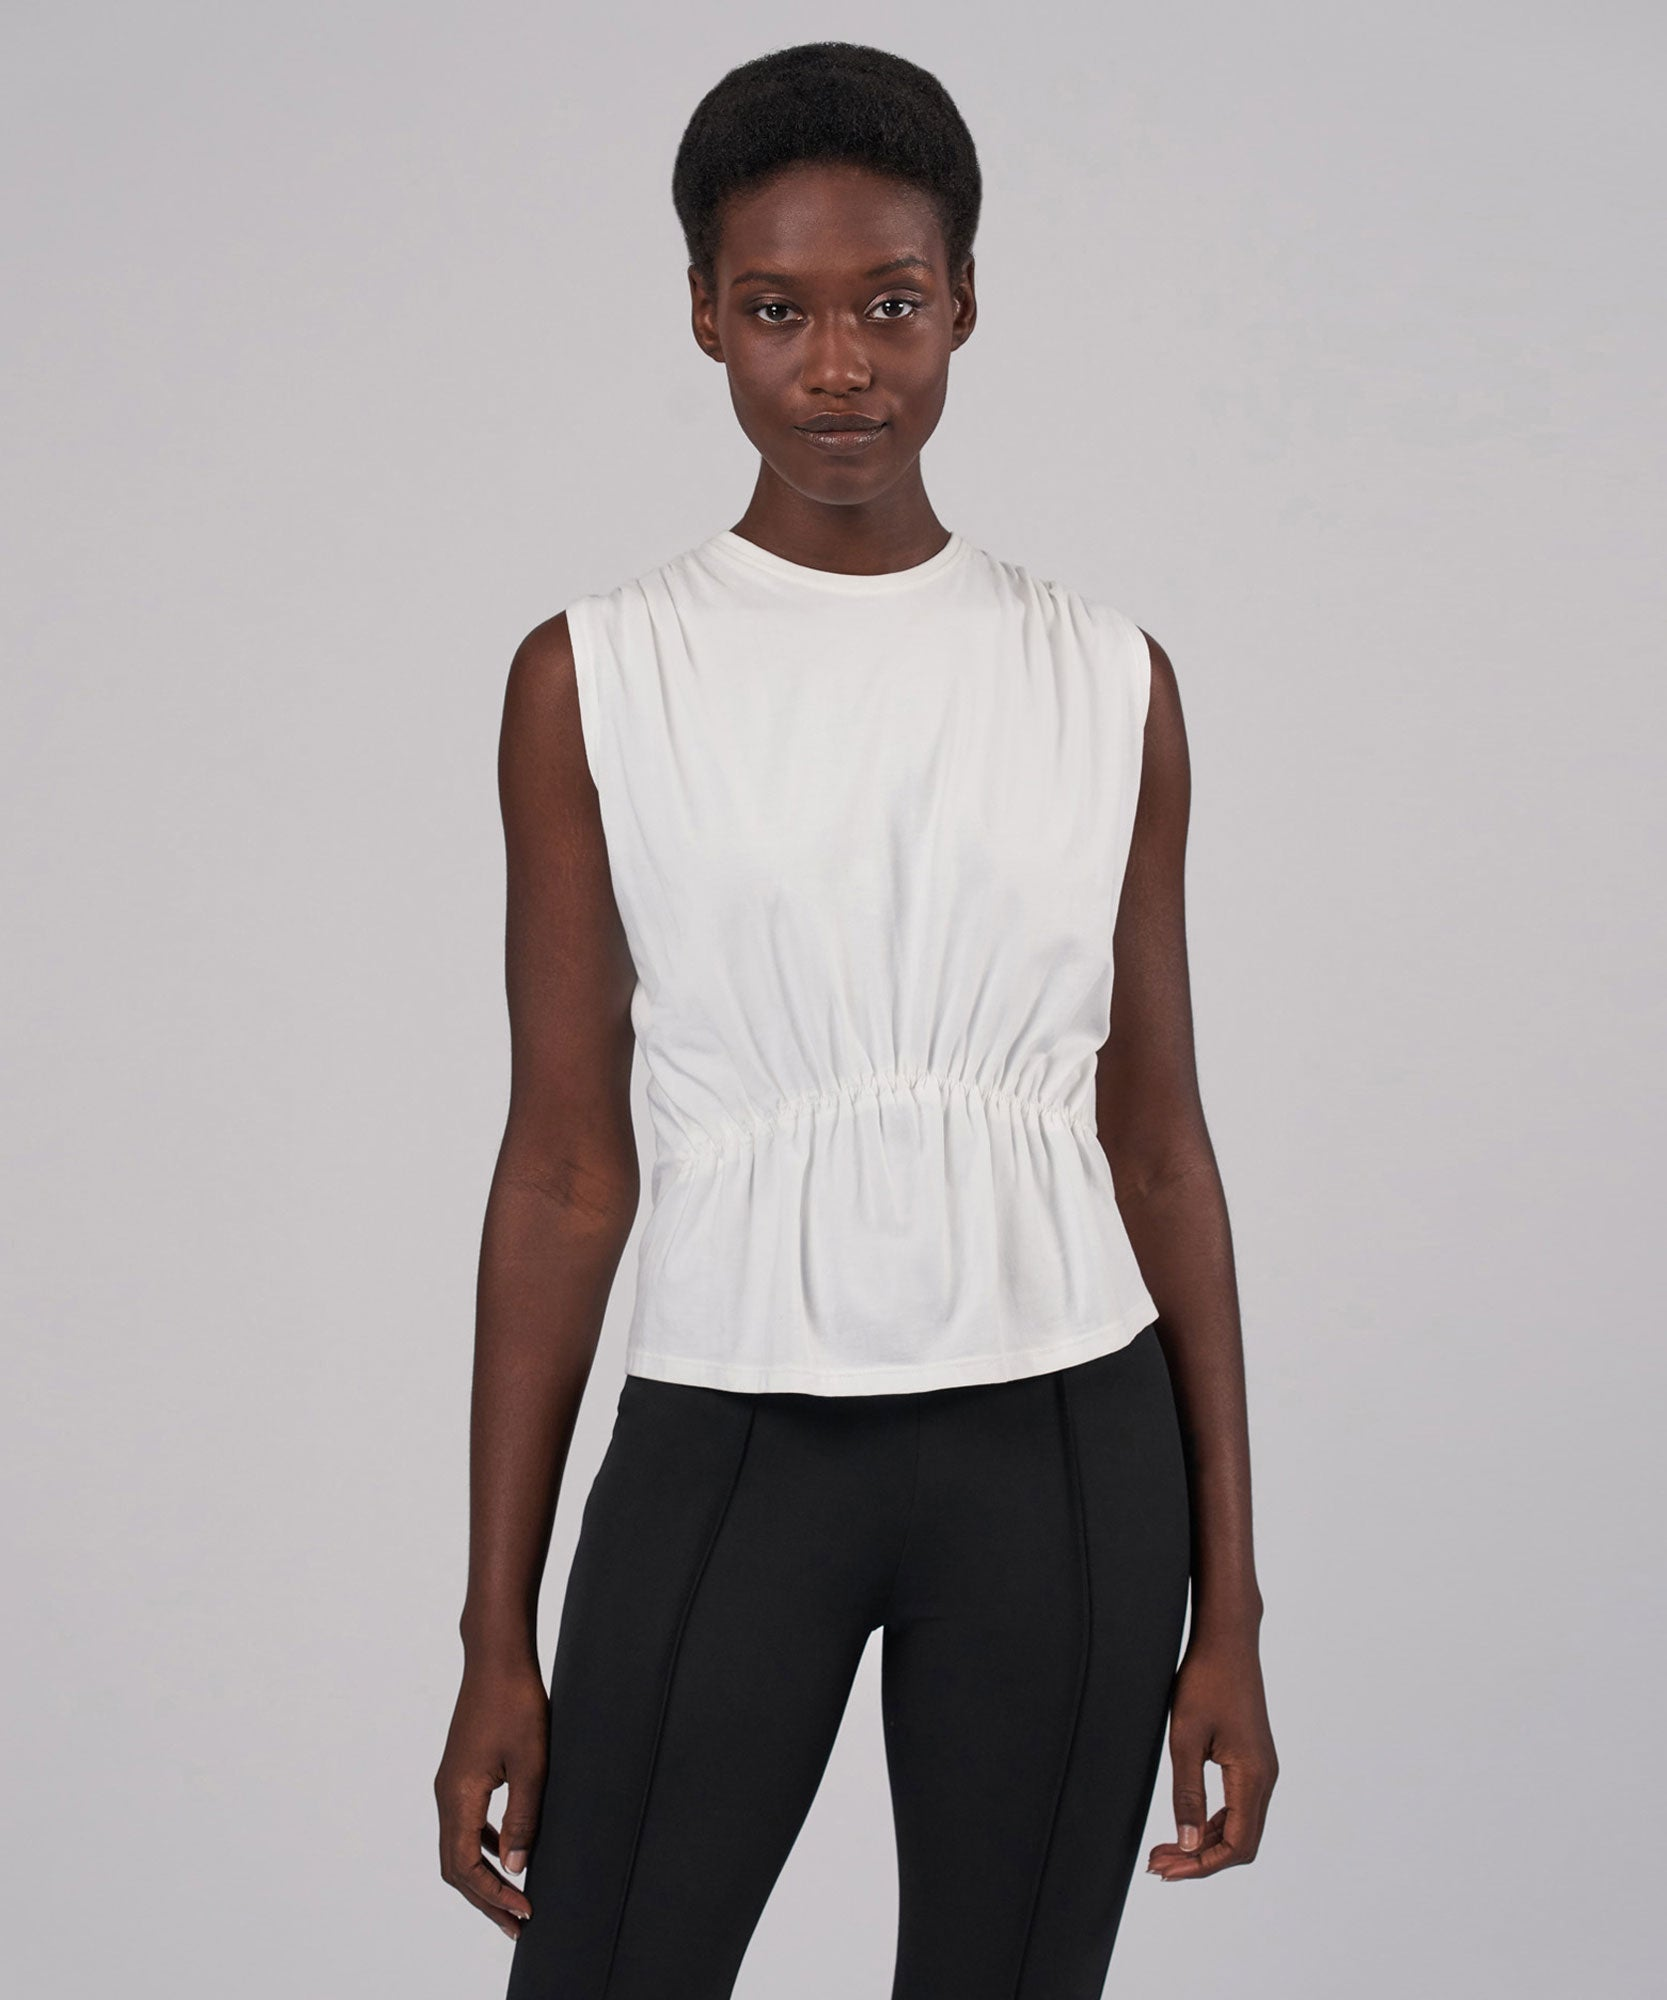 White Tuck Detail Sleeveless Cotton Tee - Women's Cotton Top by ATM Anthony Thomas Melillo